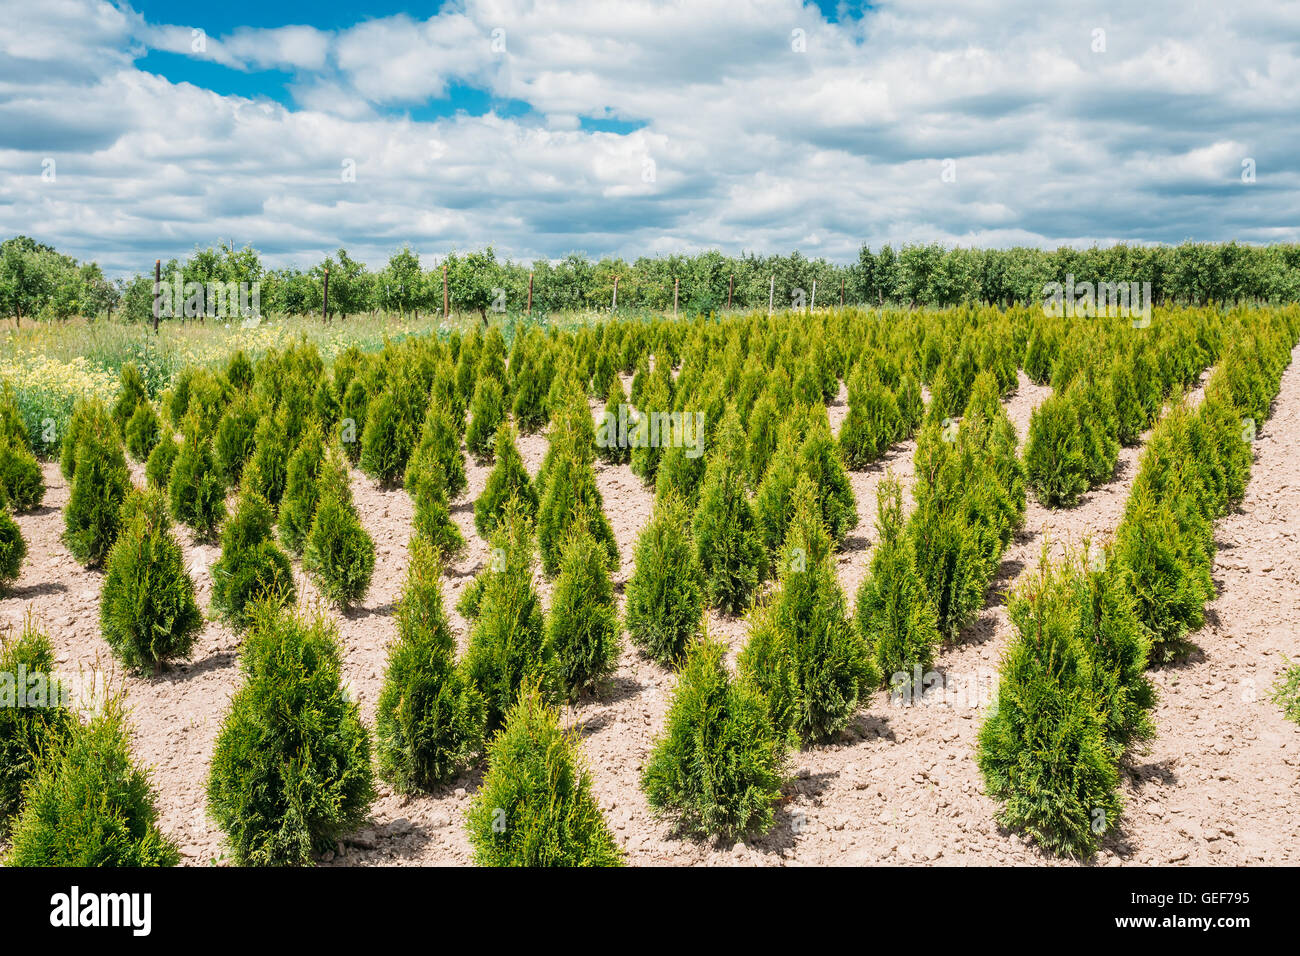 The Summer Spring Plantation Of Thuja Or Thuya Seedlings, Planted Rows On Sandy Soil. Coniferous Small Bushes. The - Stock Image